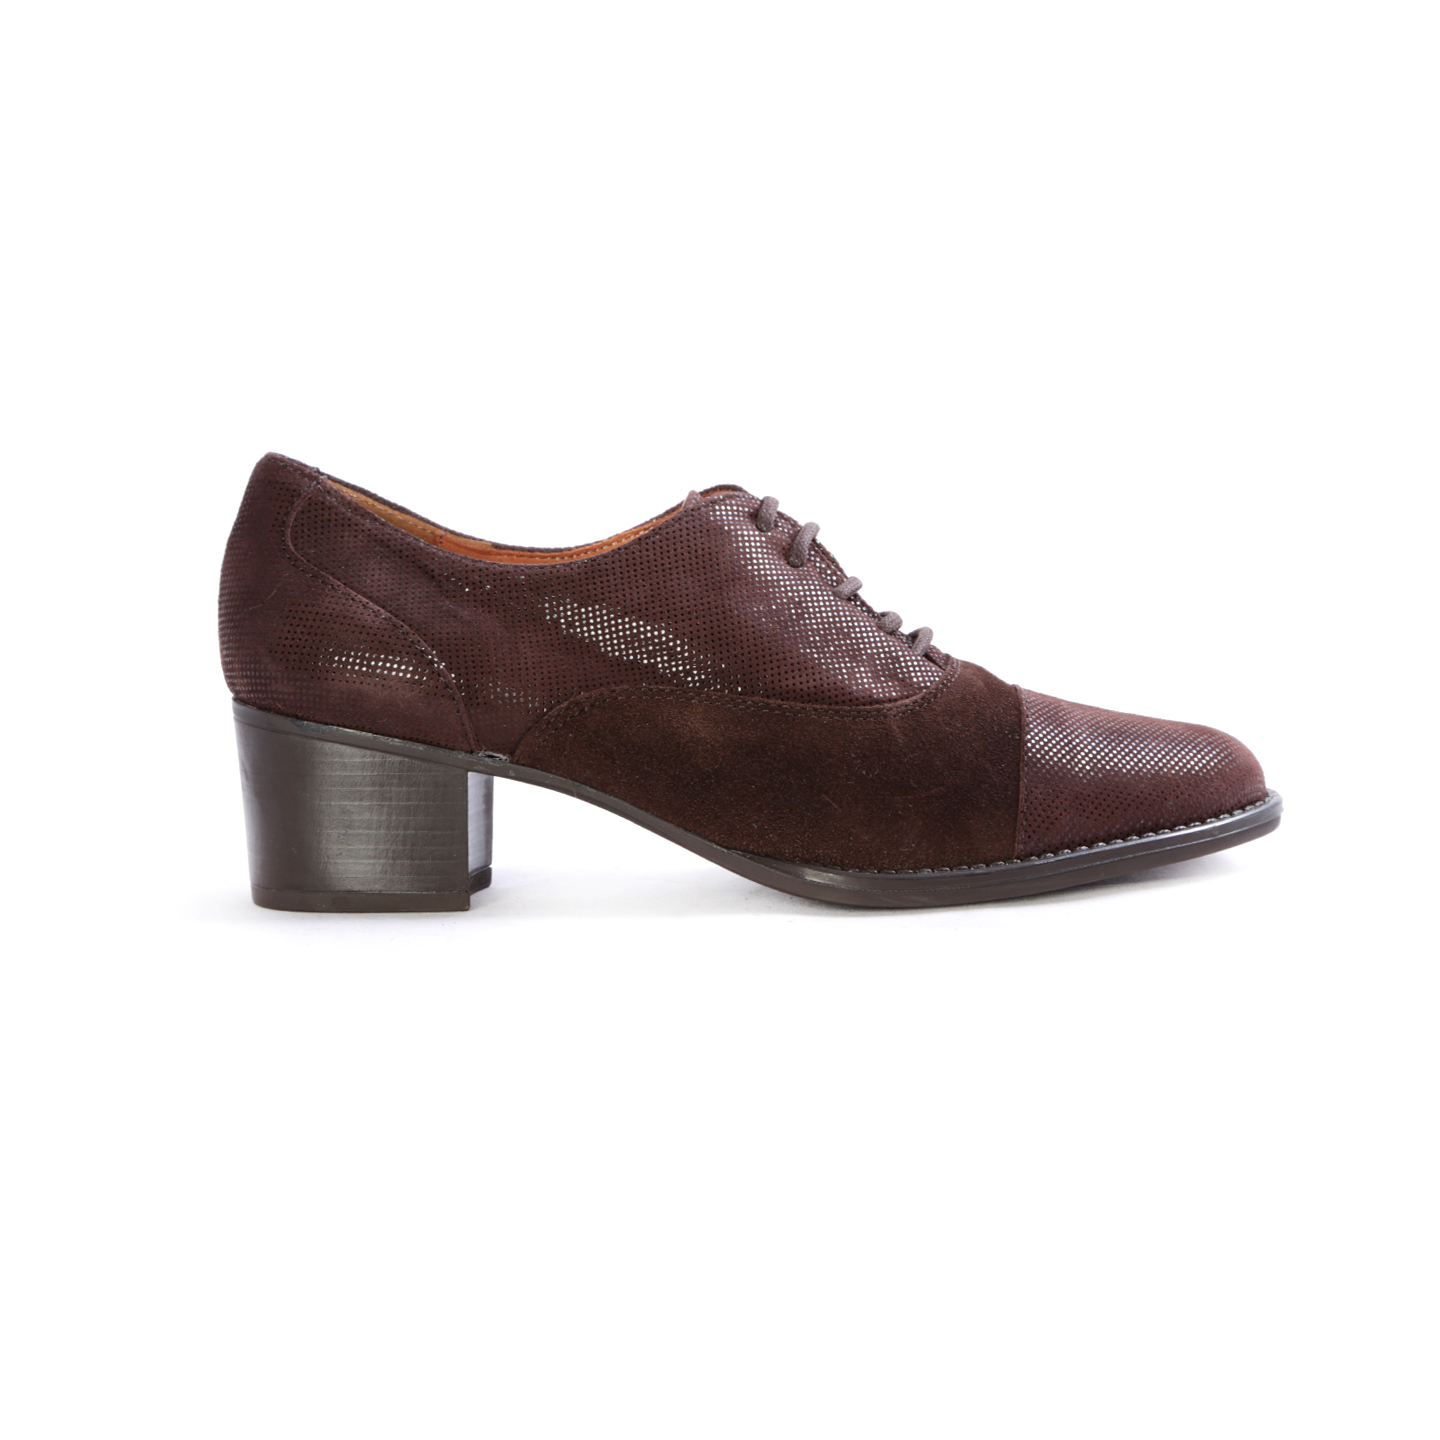 Candice velours marron - 89,90€